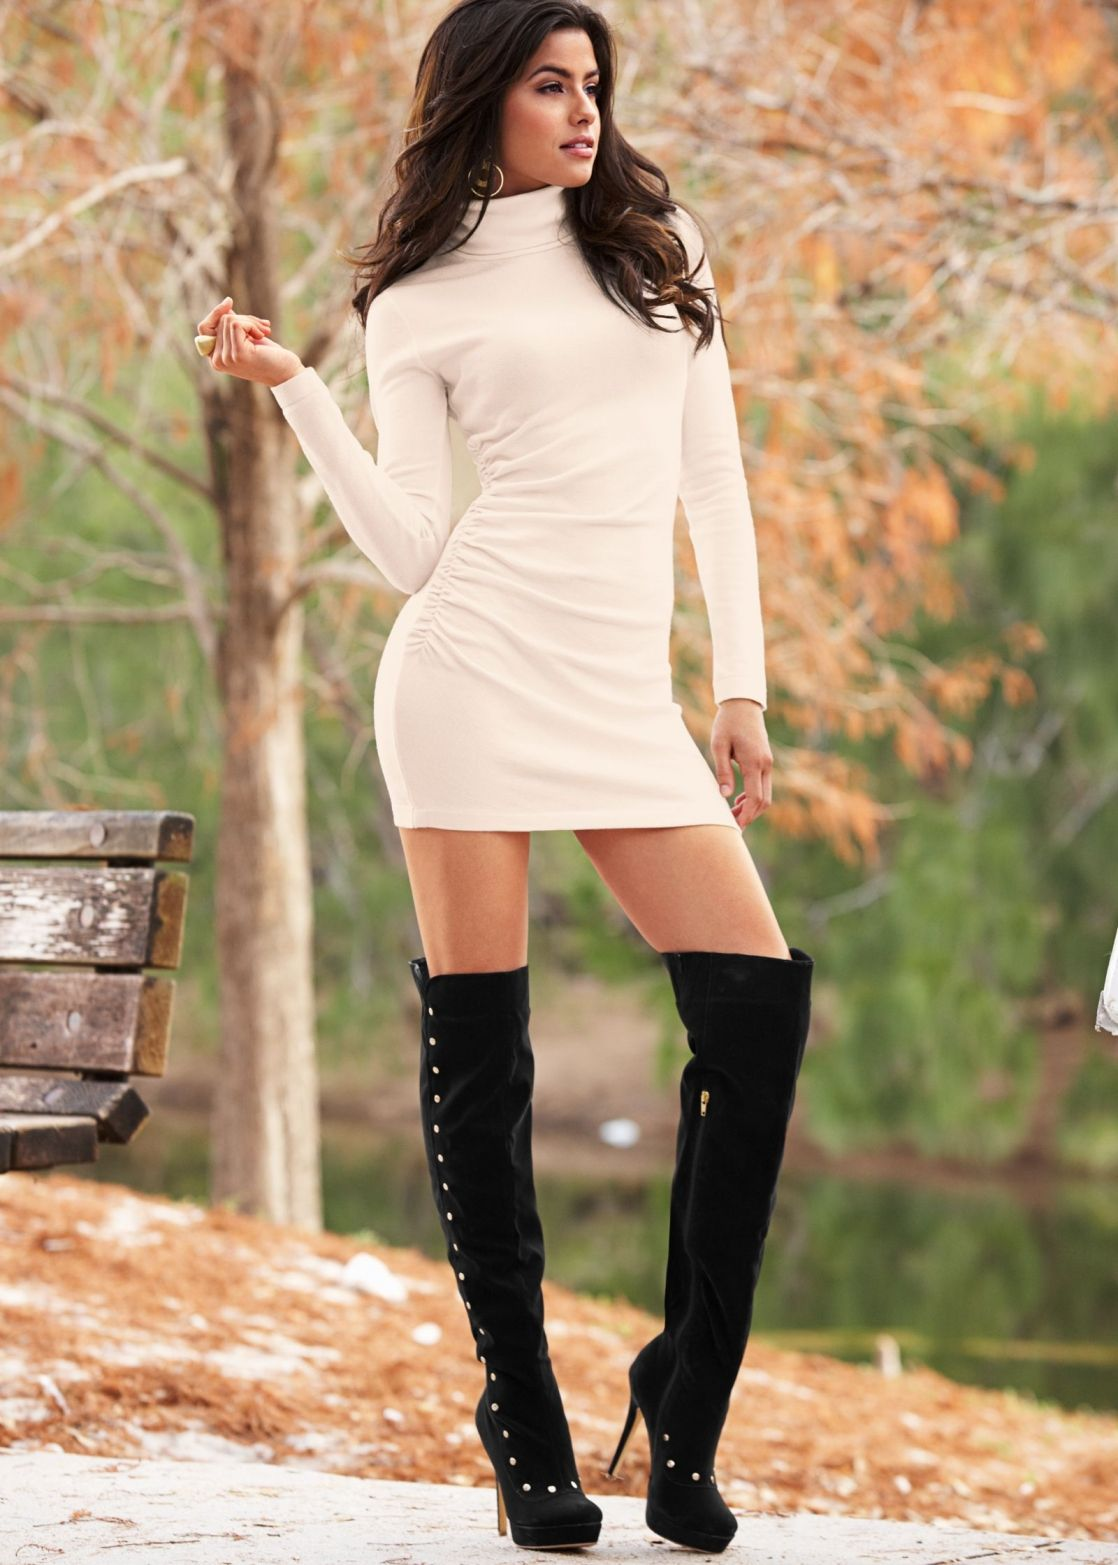 Sexy Sweater Dresses with High Boots